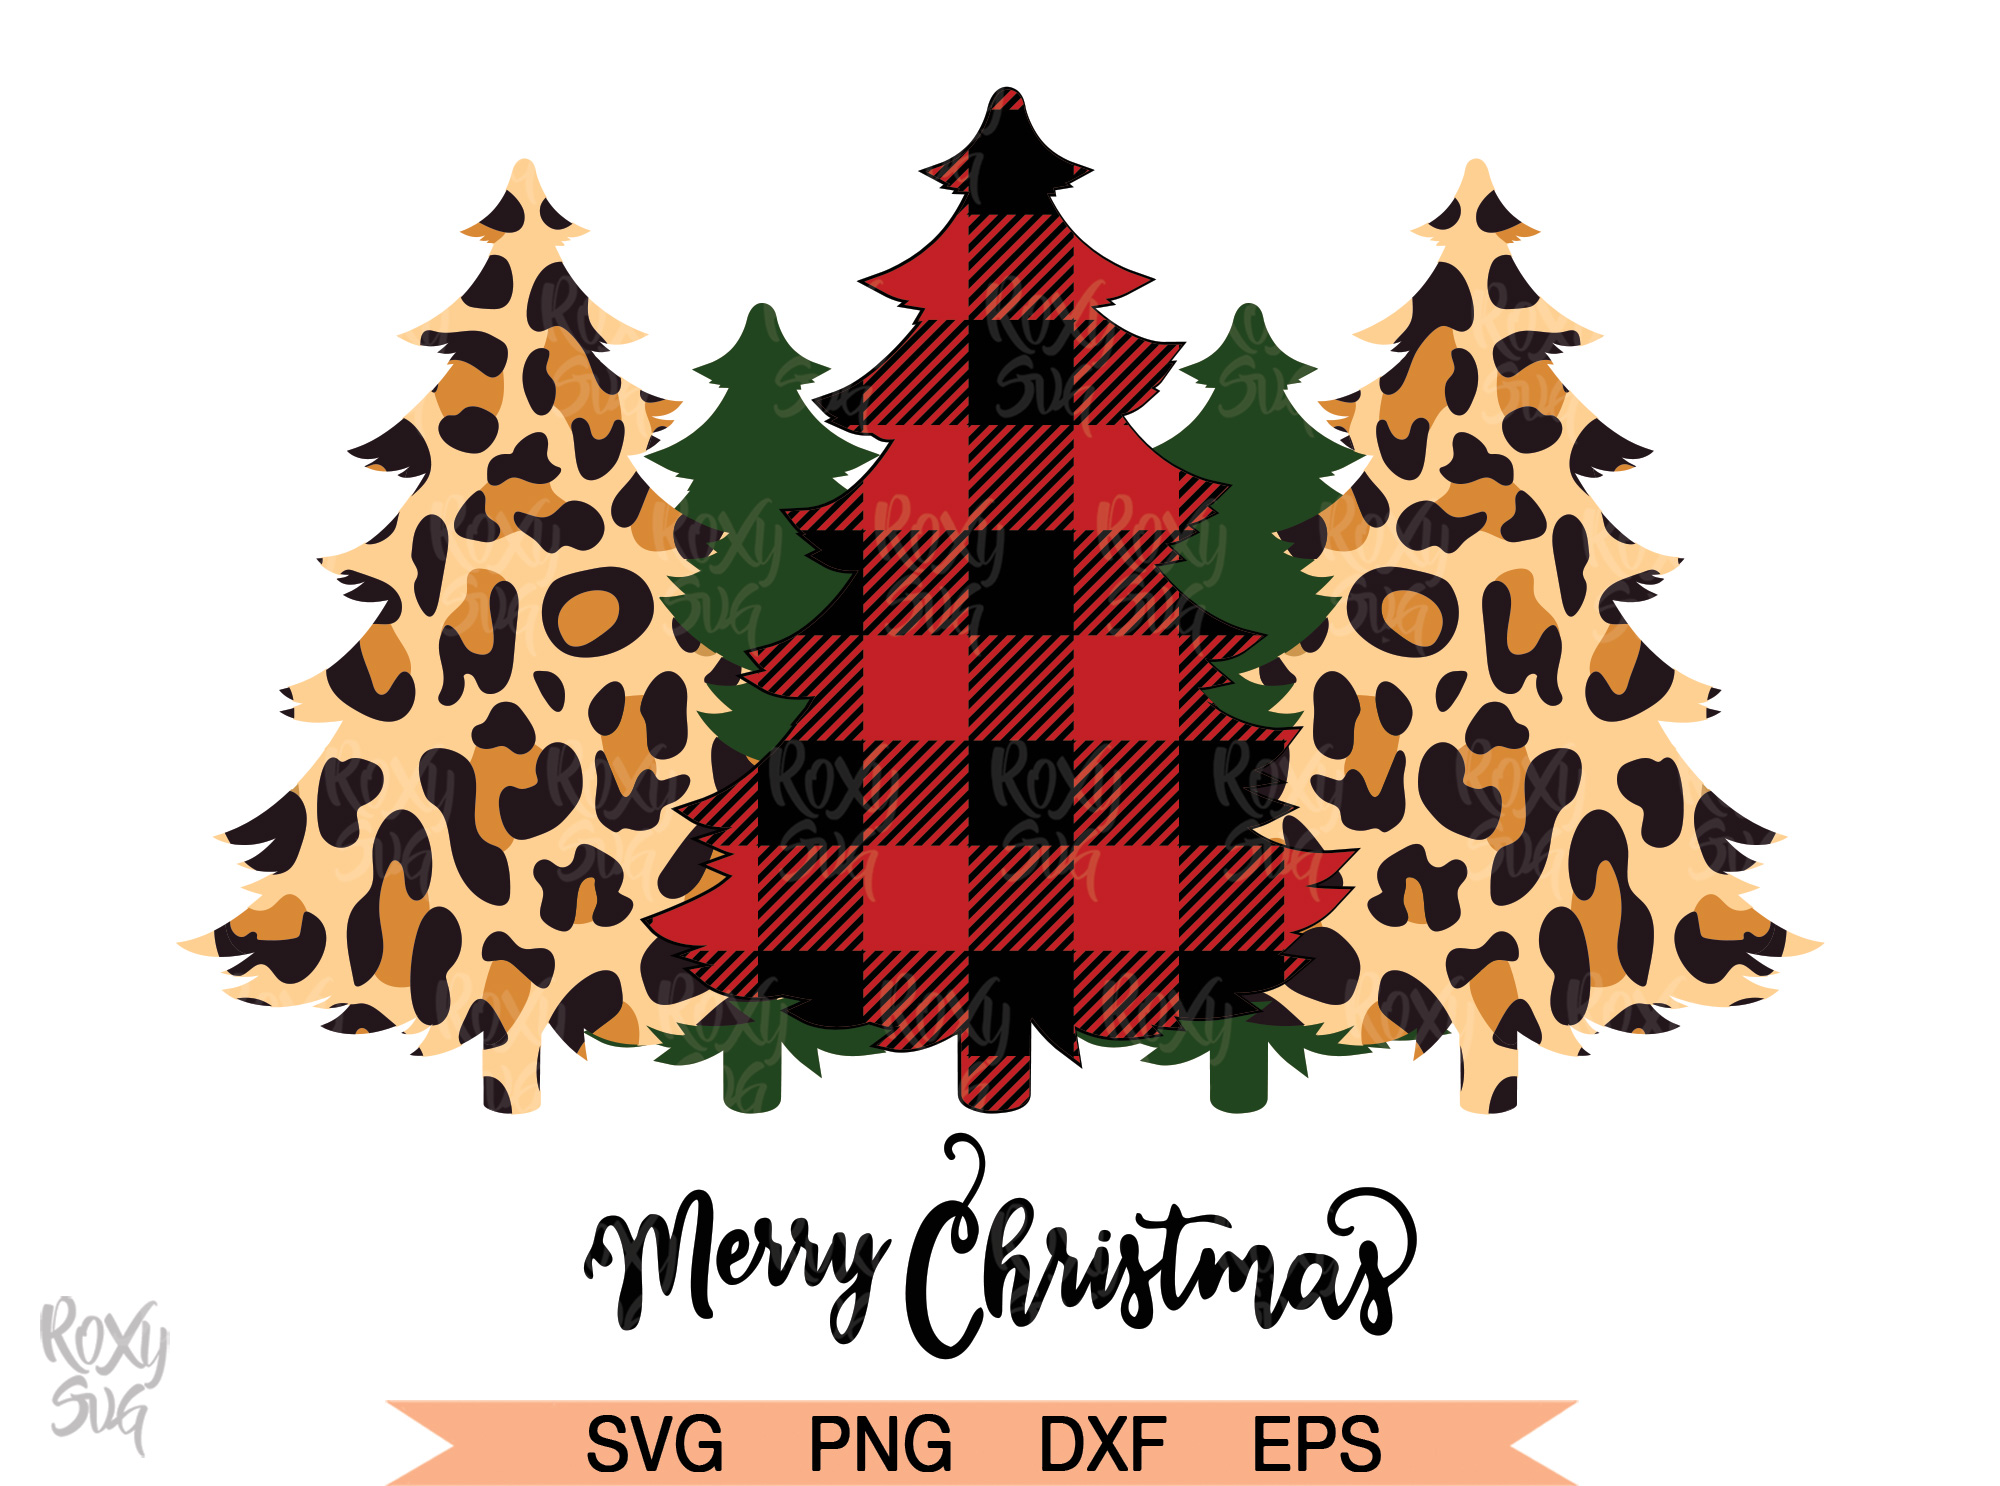 Download Free Arbol De Navidad Svg Graphic By Roxysvg26 Creative Fabrica for Cricut Explore, Silhouette and other cutting machines.